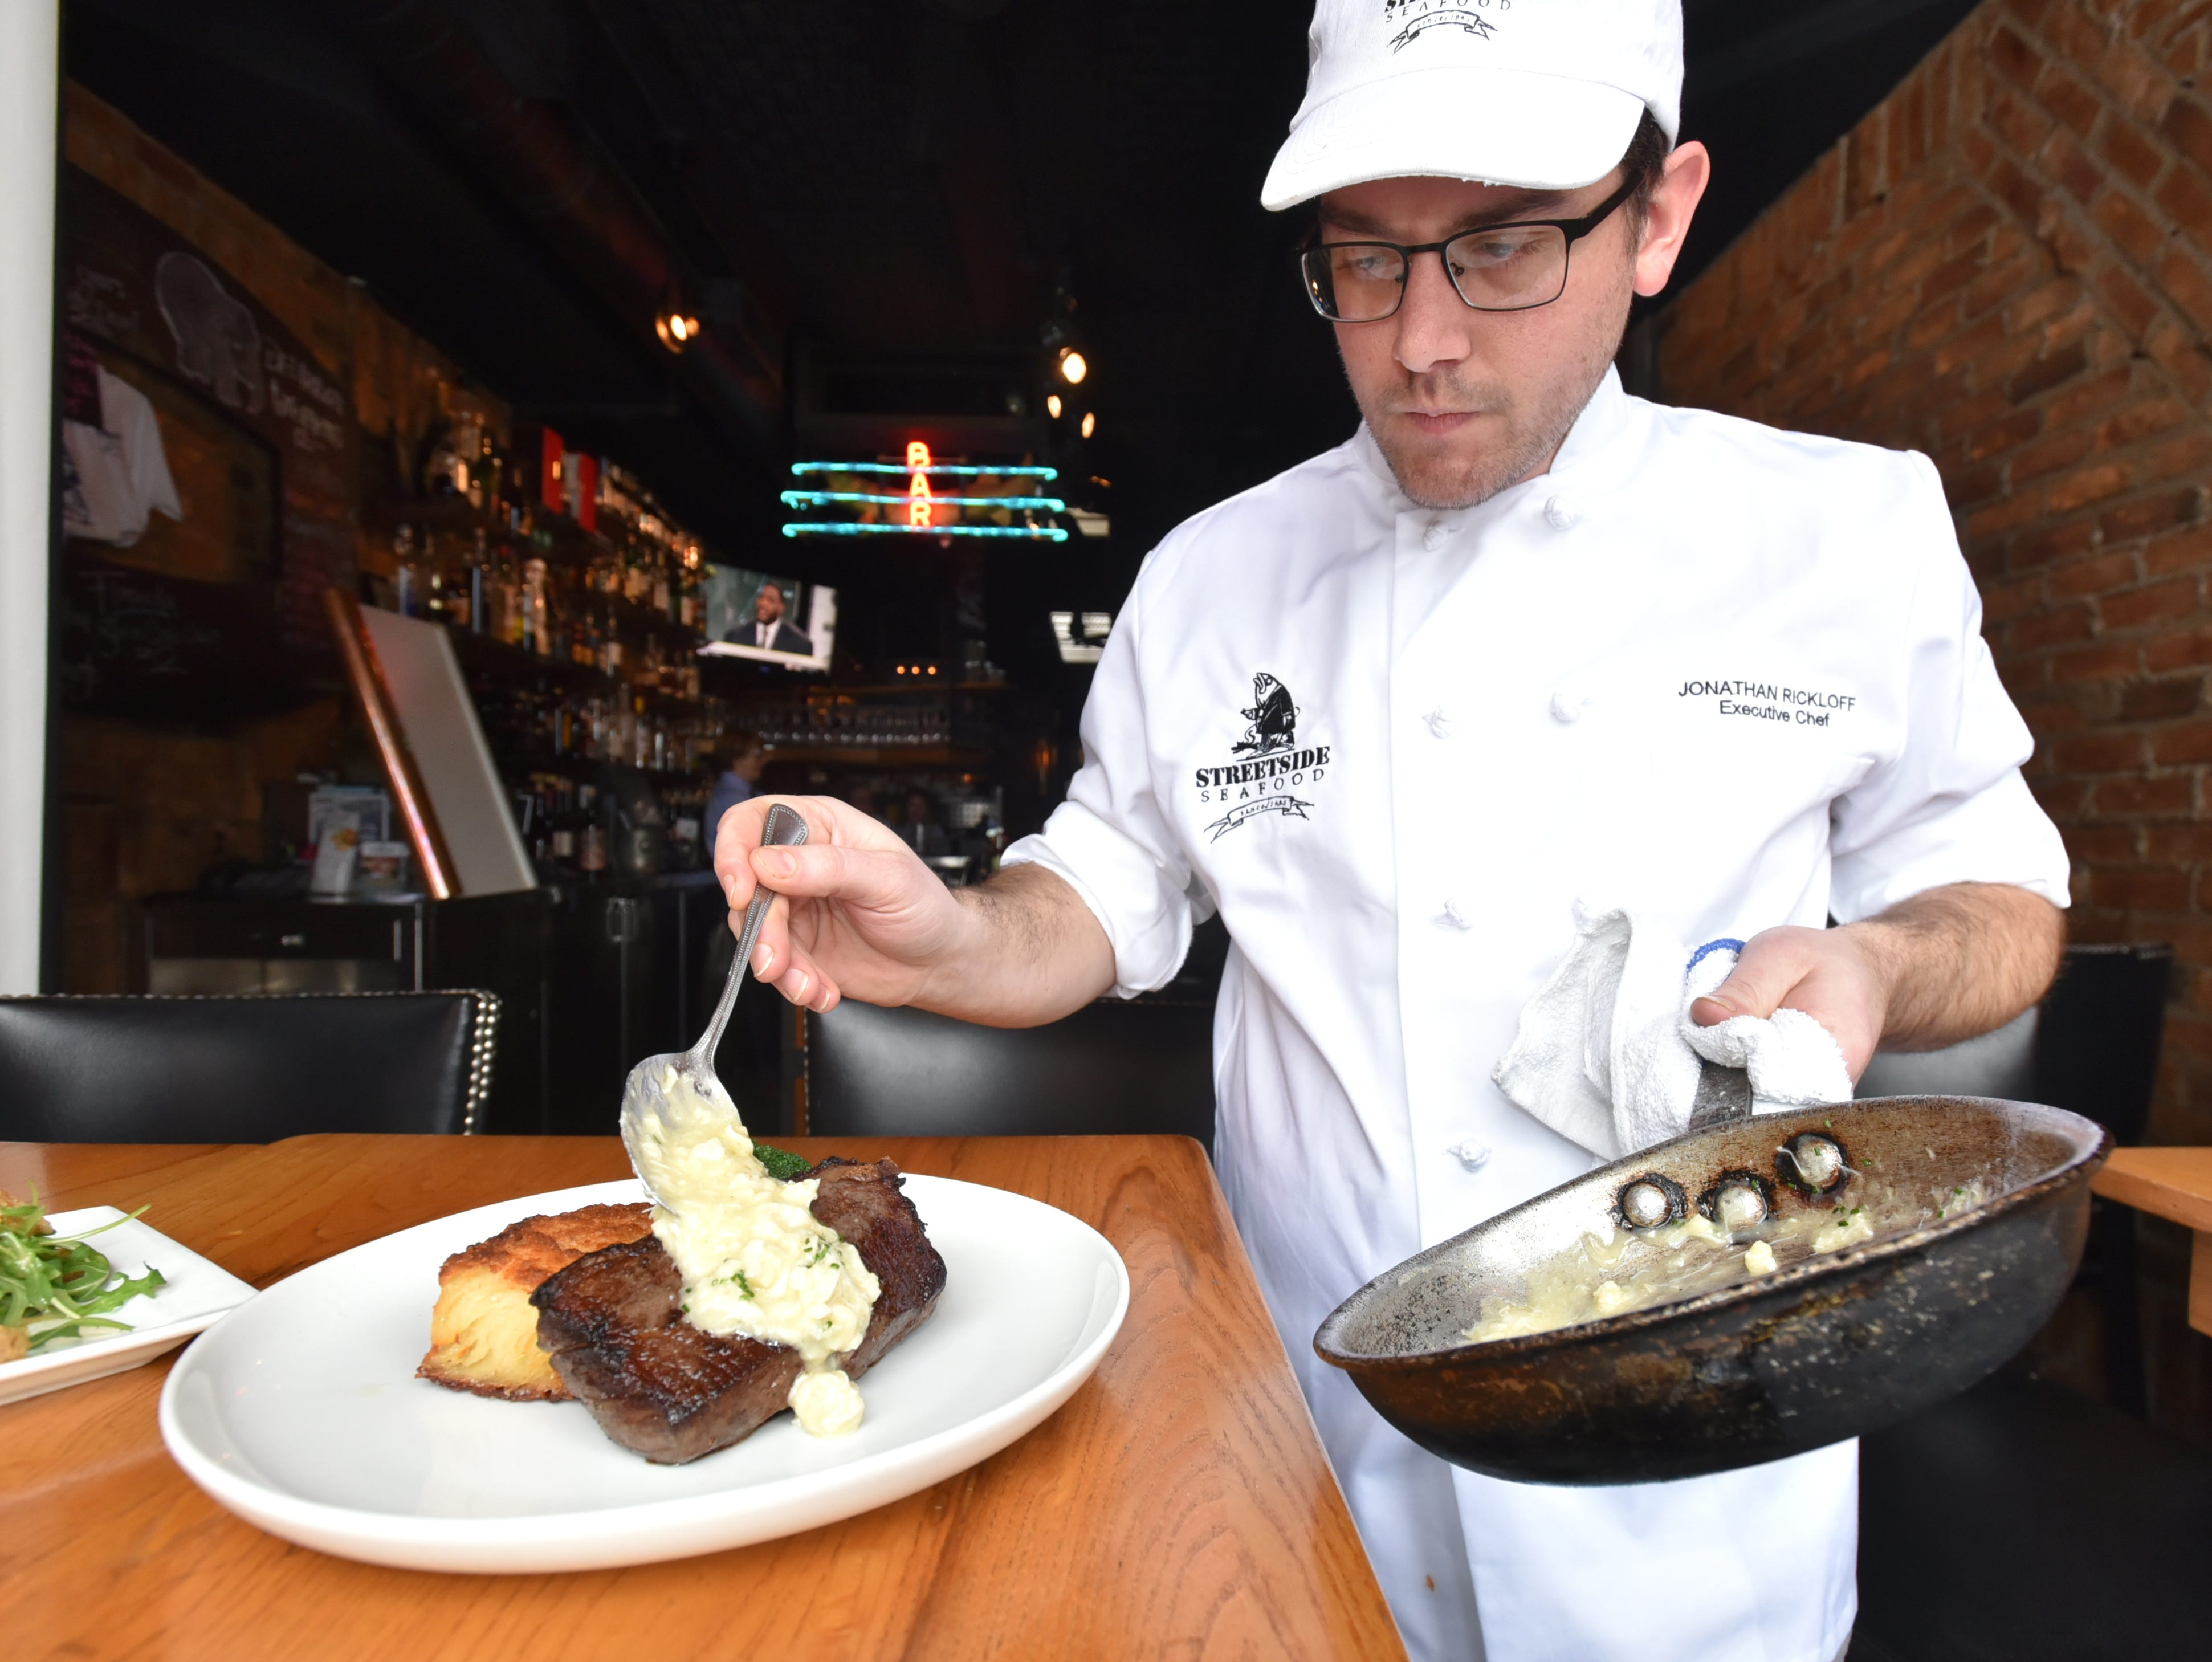 Jonathan Rickloff, executive chef at Birmingham's Streetside Seafood, spoons some creamy anna potatoes on a Prime New York strip steak Oscar at the Pierce Street eatery.